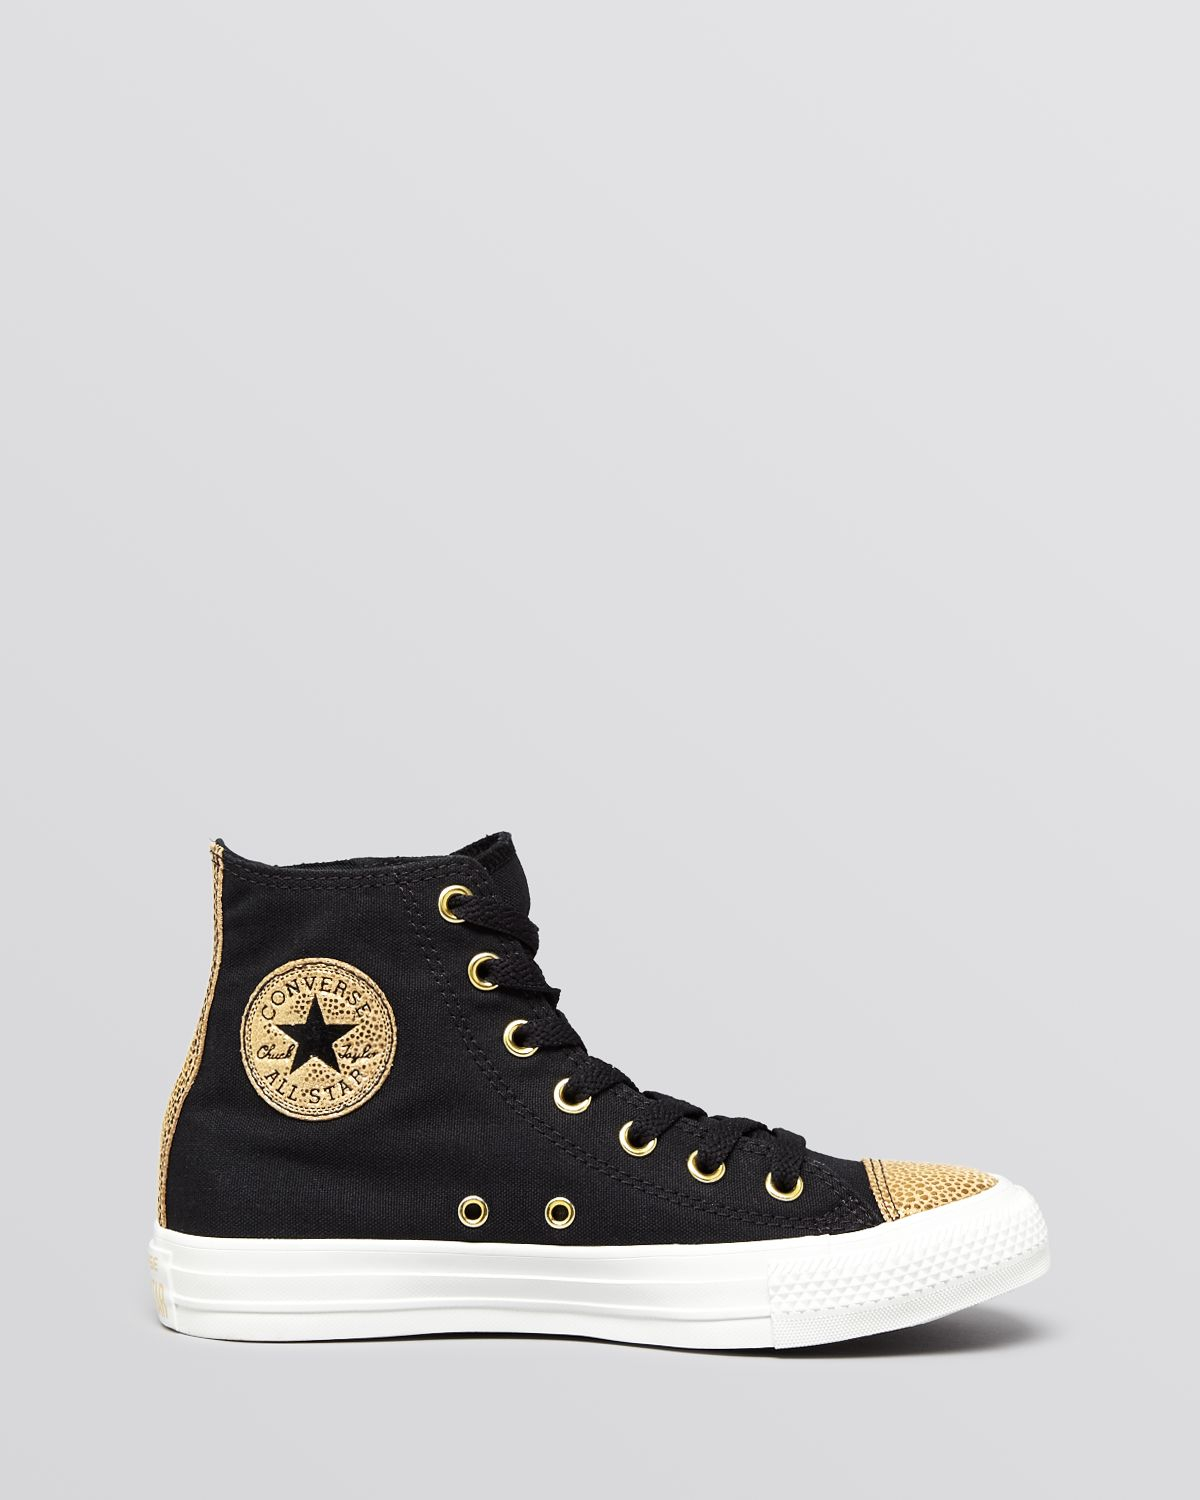 b0ed78cf02a8f Lyst - Converse Lace Up High Top Sneakers Chuck Taylor All Star Side ...